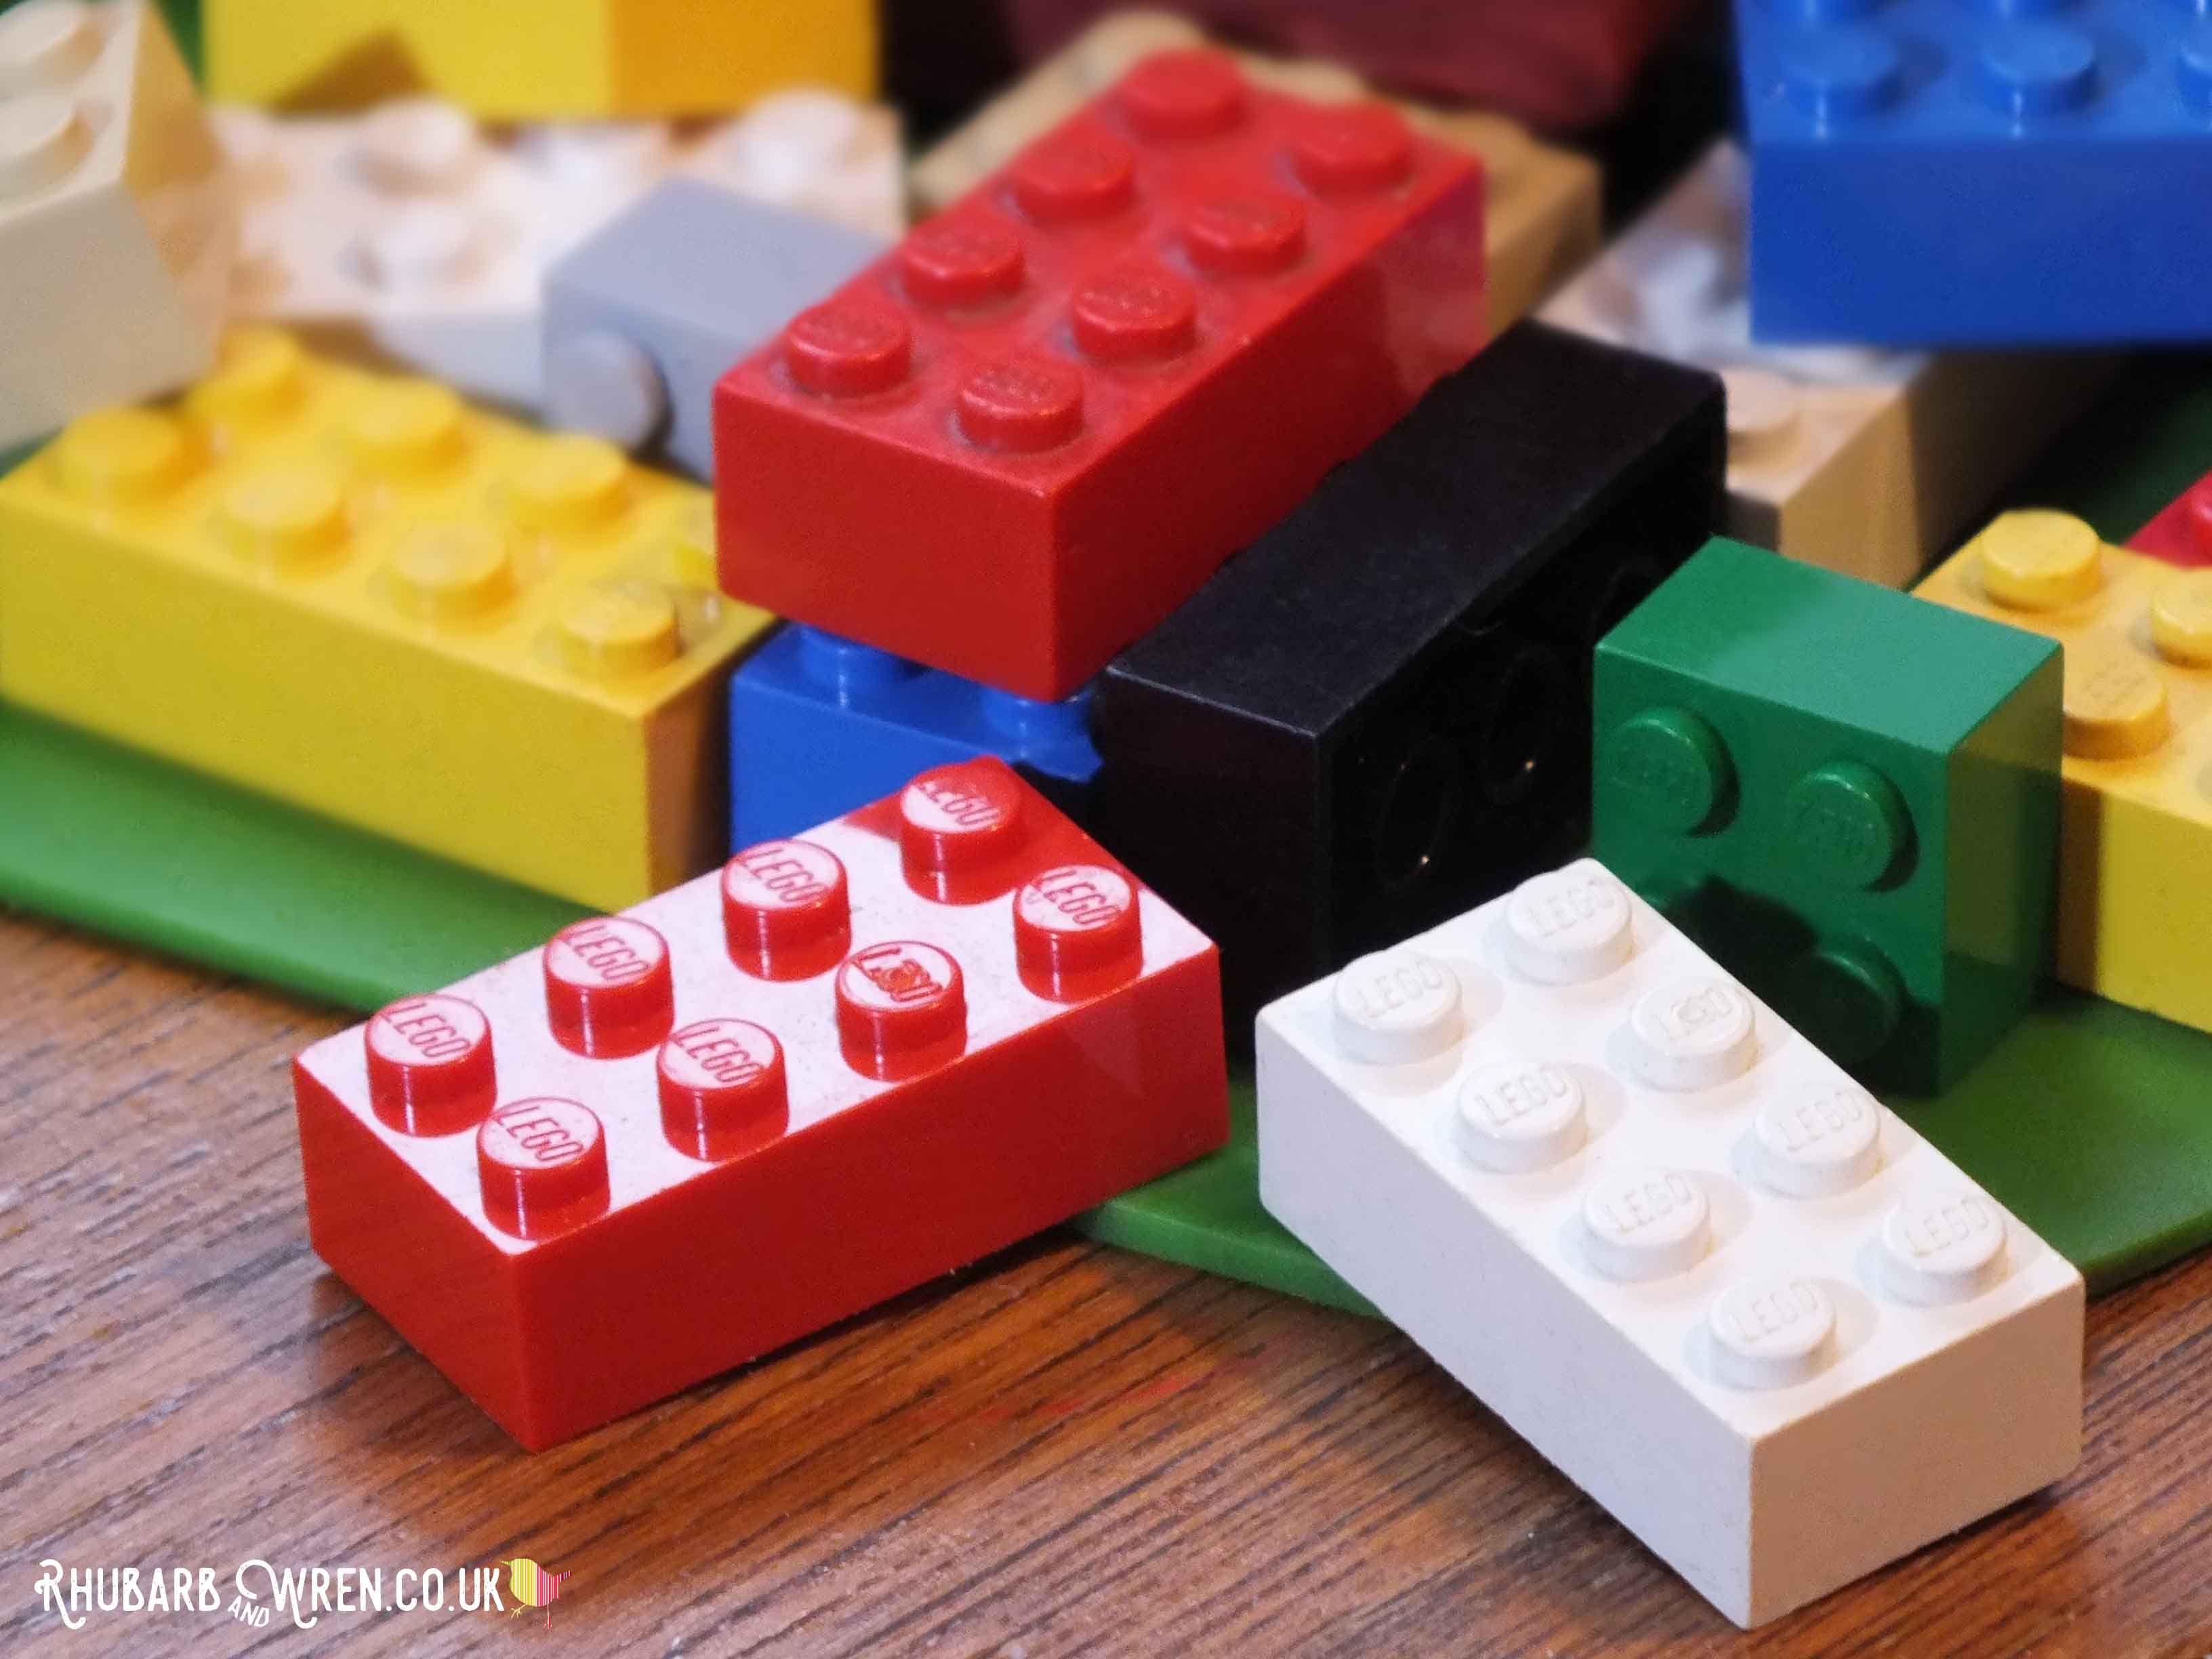 A pile of brightly coloured Lego bricks